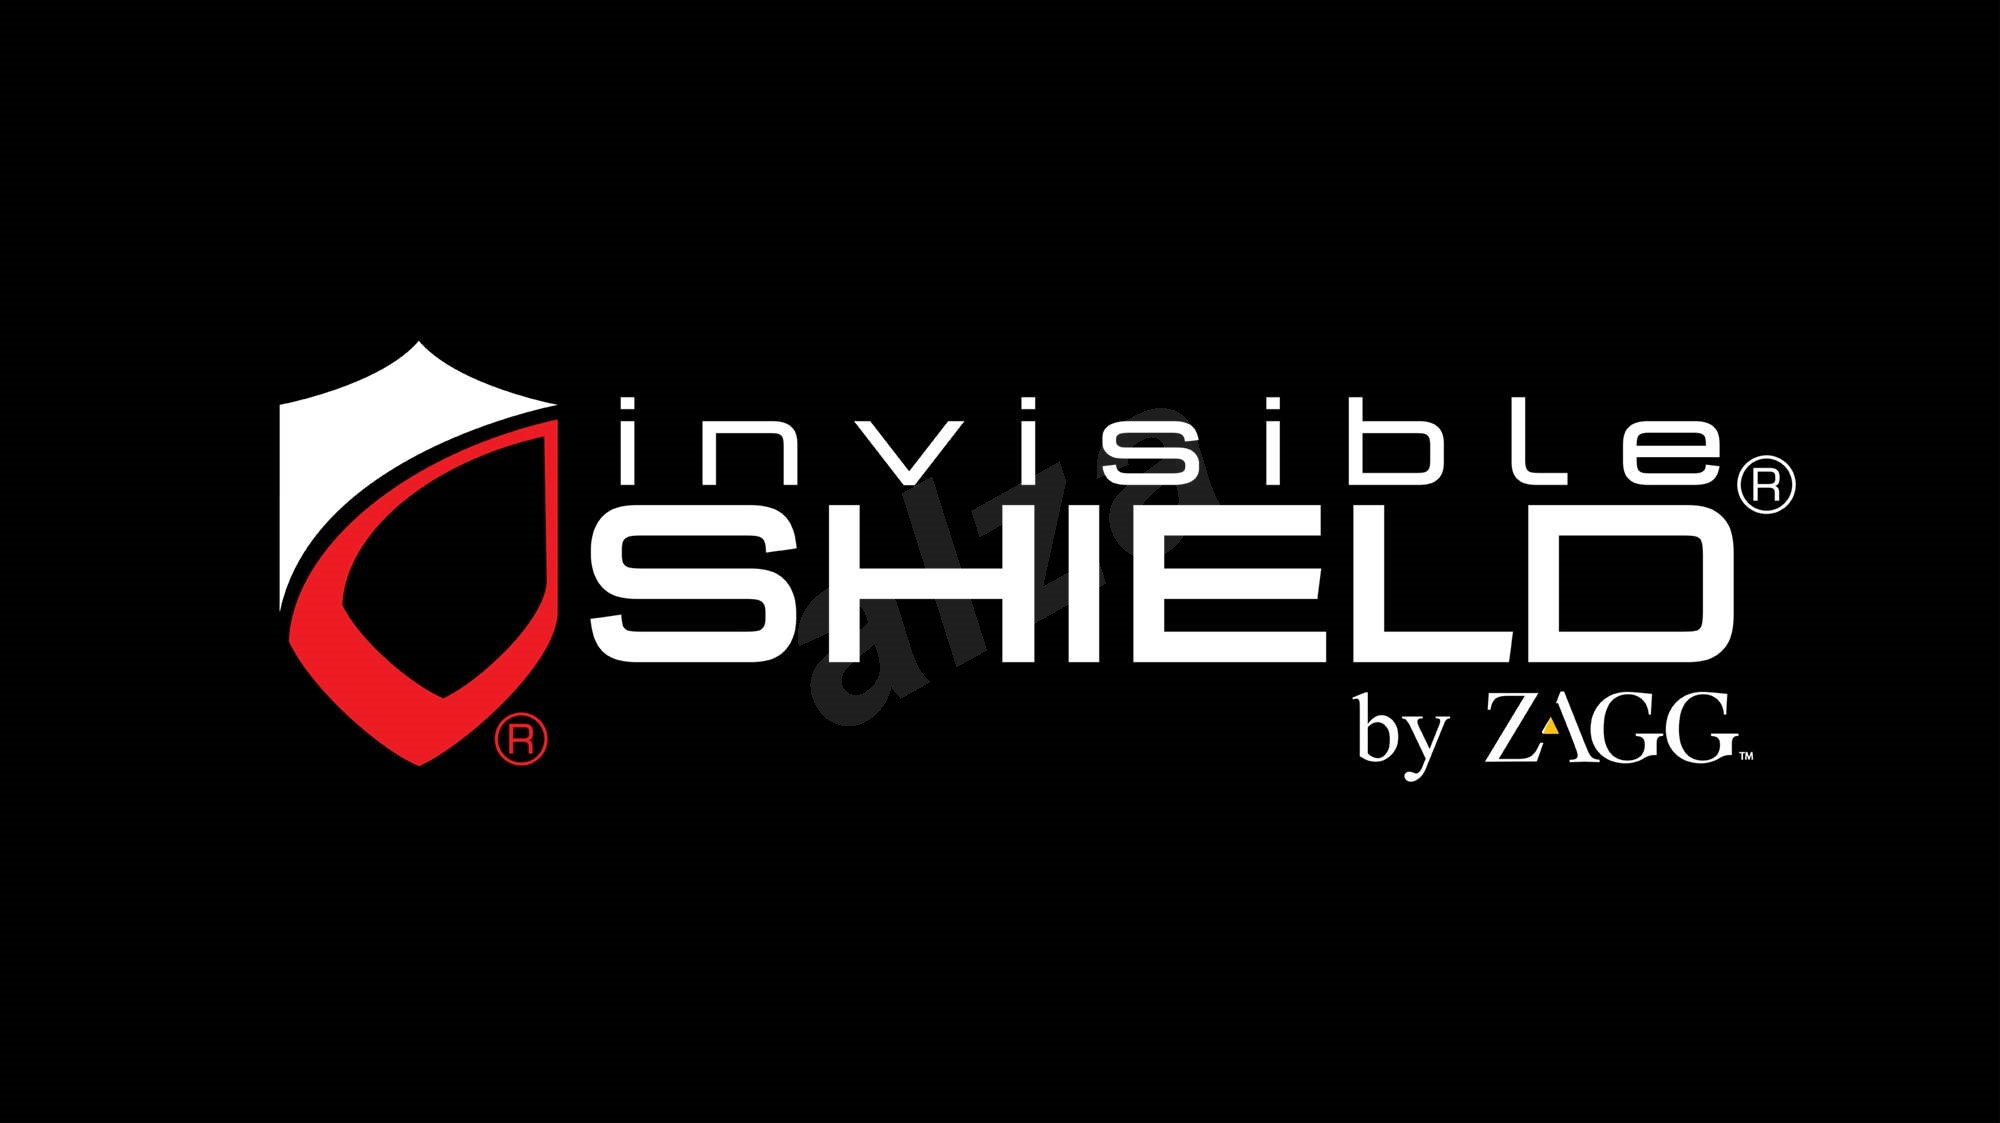 Prevent your mobile device from getting cracks, dents, and scratches with the ZAGG InvisibleShield Glass + Luxe Screen Protector!. This tempered-glass shield provides 3x more shatter protection than unprotected tiospecicin.gq features an ion matrix layer that offers edge-to-edge protection for your device, making it resistant to scrapes, impacts, and other damage.